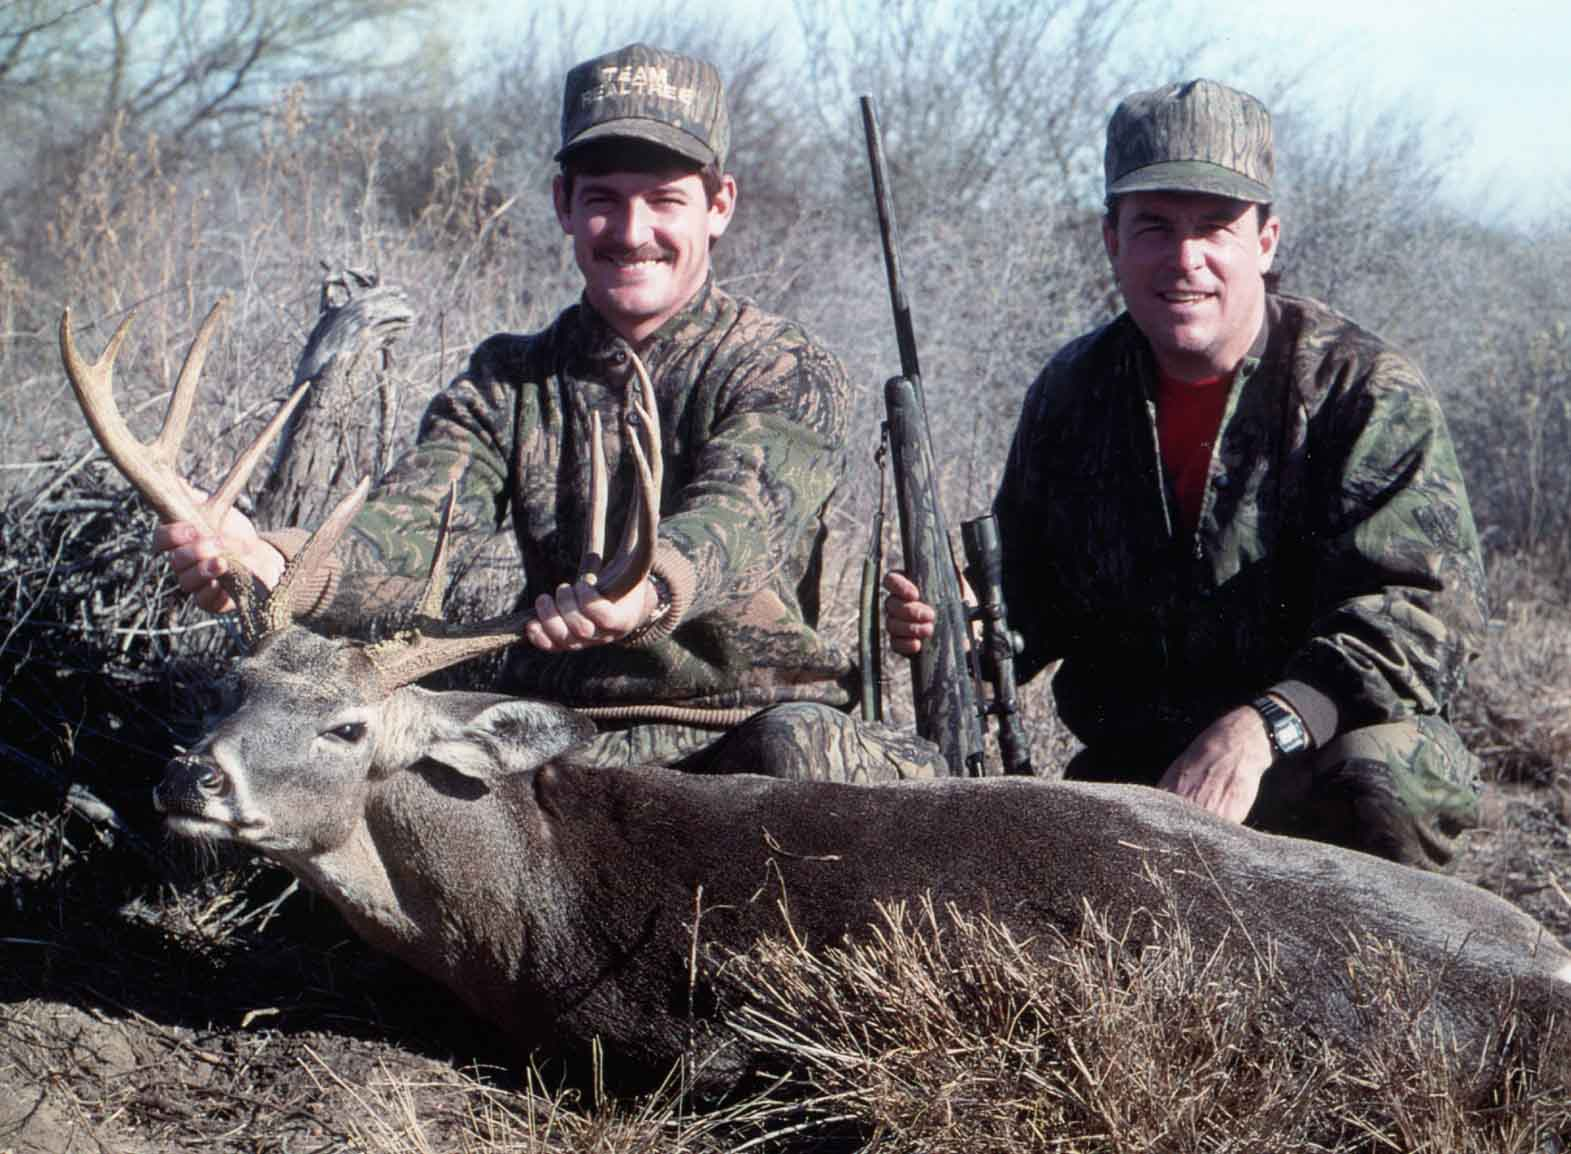 Veteran outdoor writer Duncan Dobie has hunted throughout the country with children and adults, including the late NASCAR driver Davey Allison (left) of Alabama.